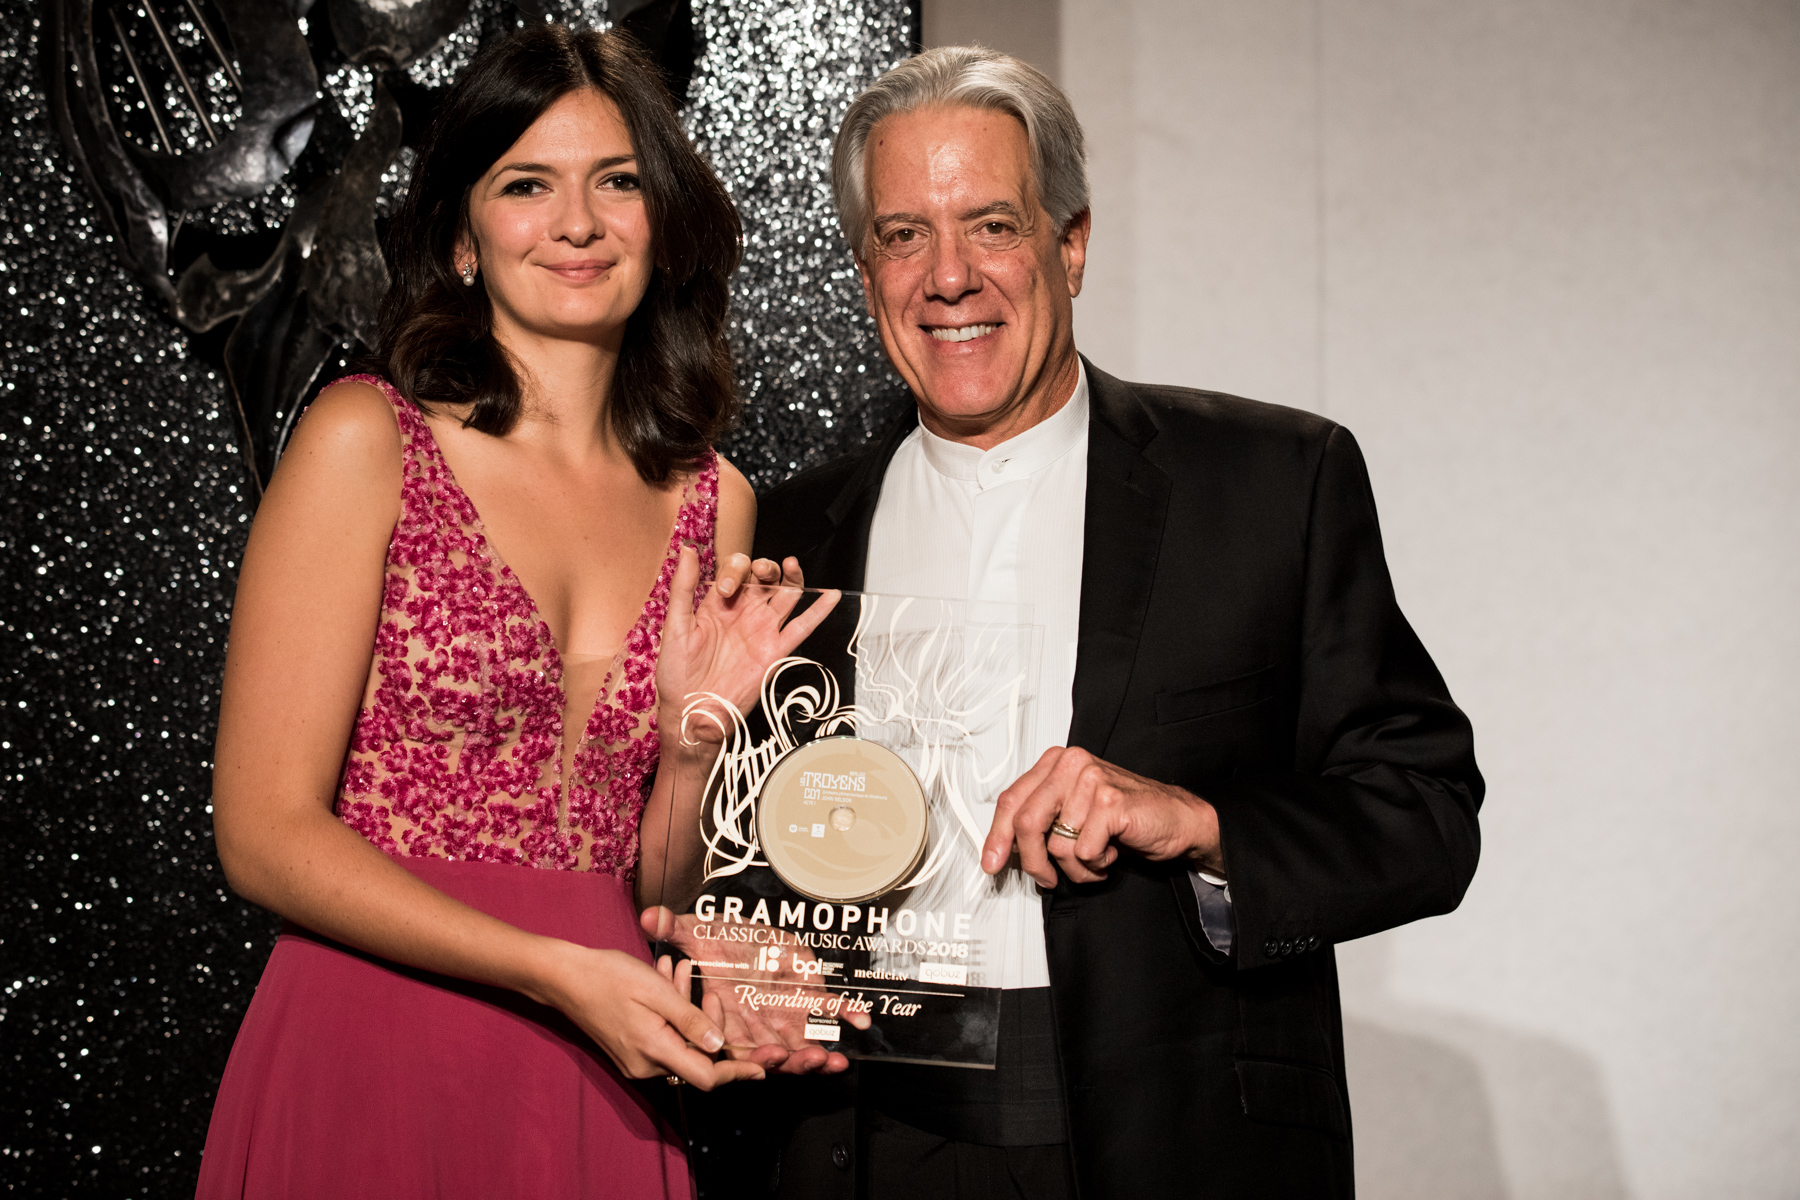 The Recording of the Year Award was won by Berlioz's Les Troyens, featuring Marianne Crebassa